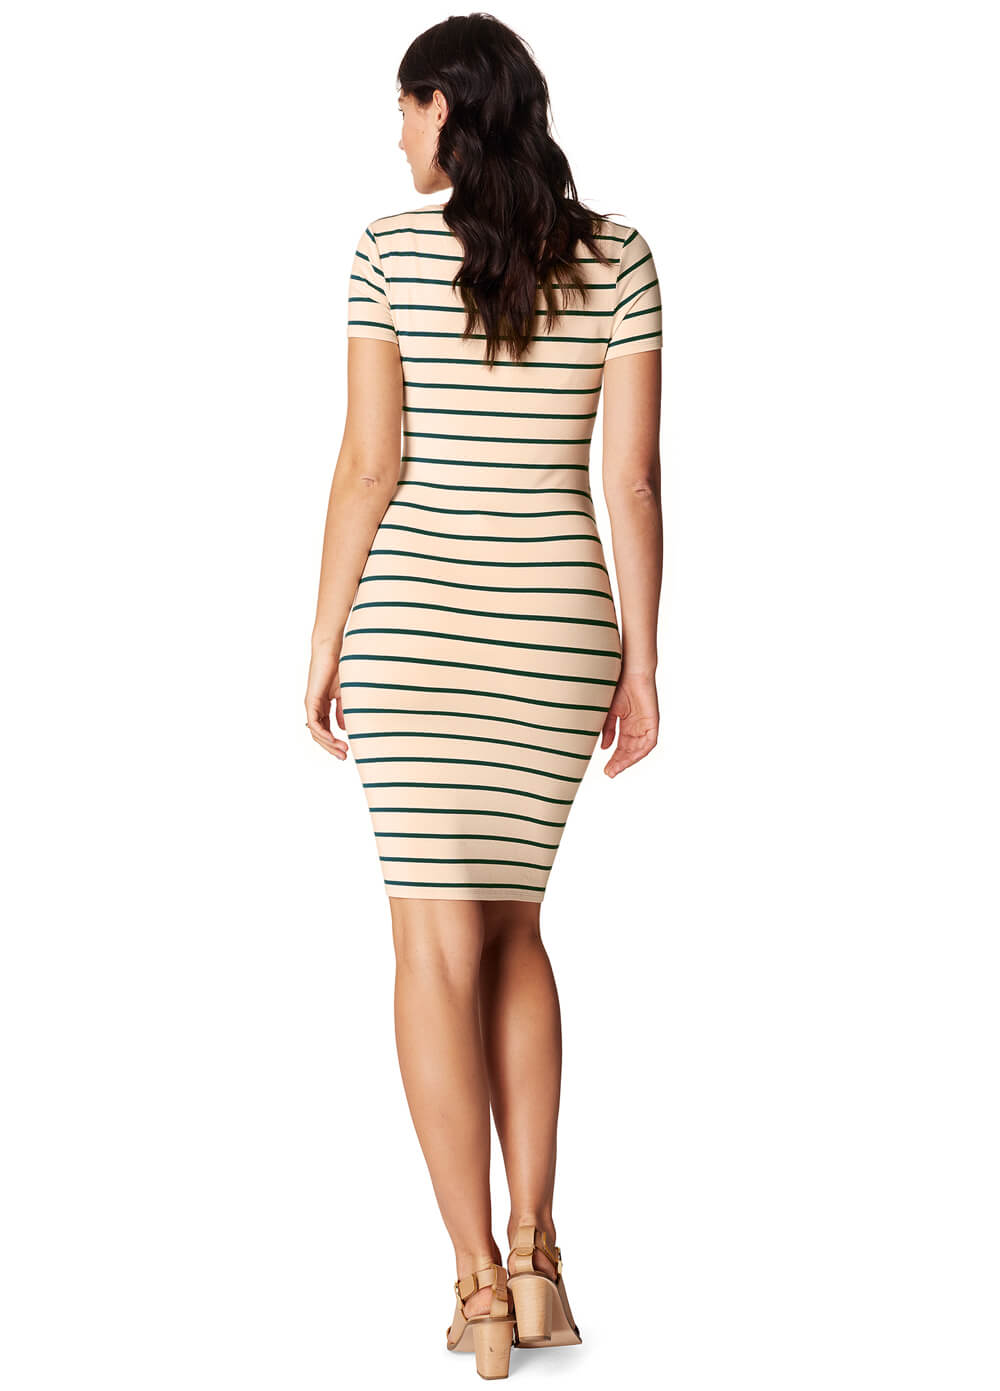 Lotus Maternity Dress in Green Stripes by Noppies